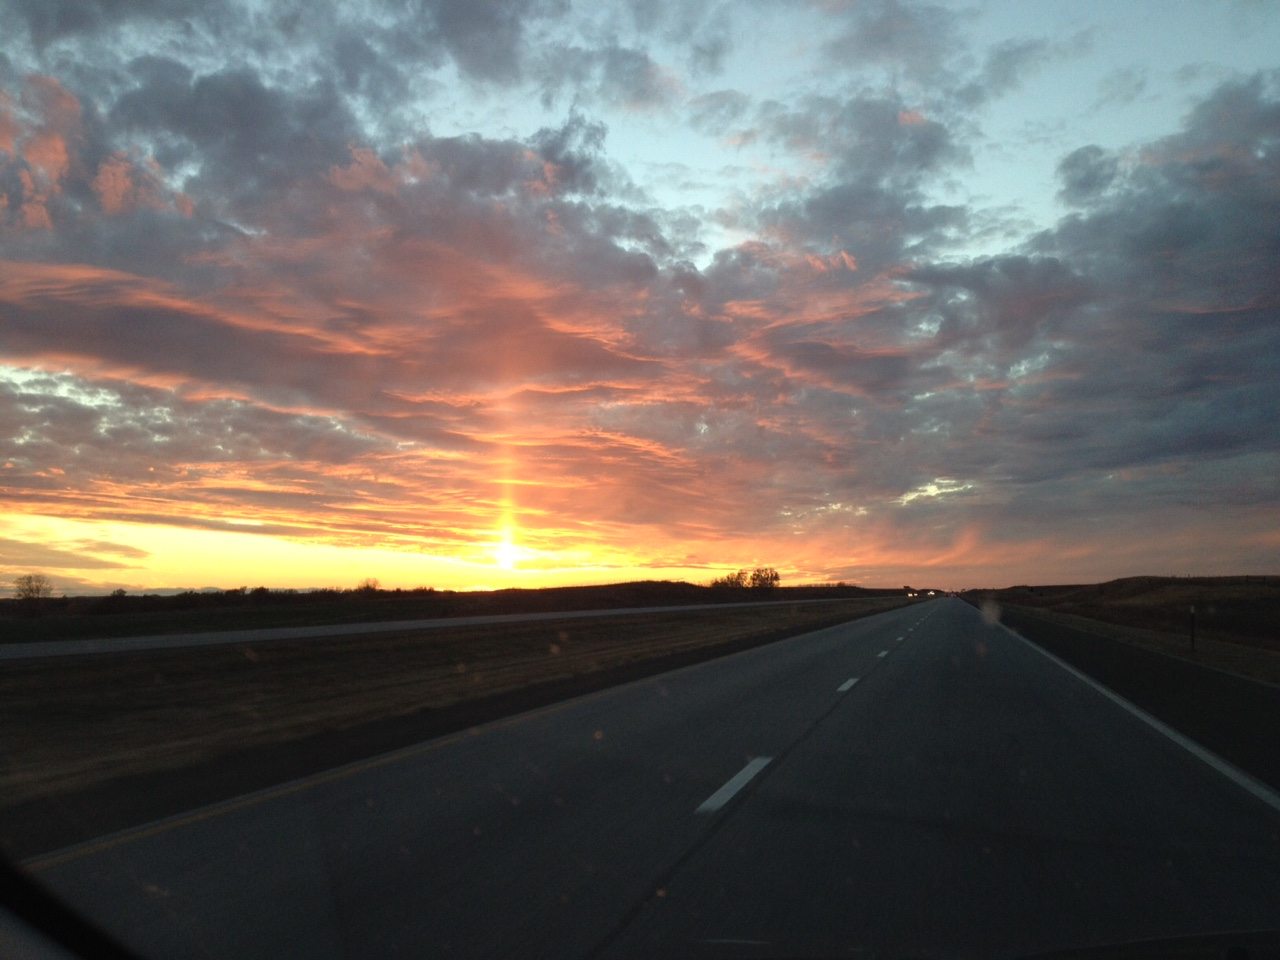 Just one from the seemingly endless supply of gorgeous Kansas sunsets, this one taken from a car driving west on I-70. (Photo by J. Schafer)